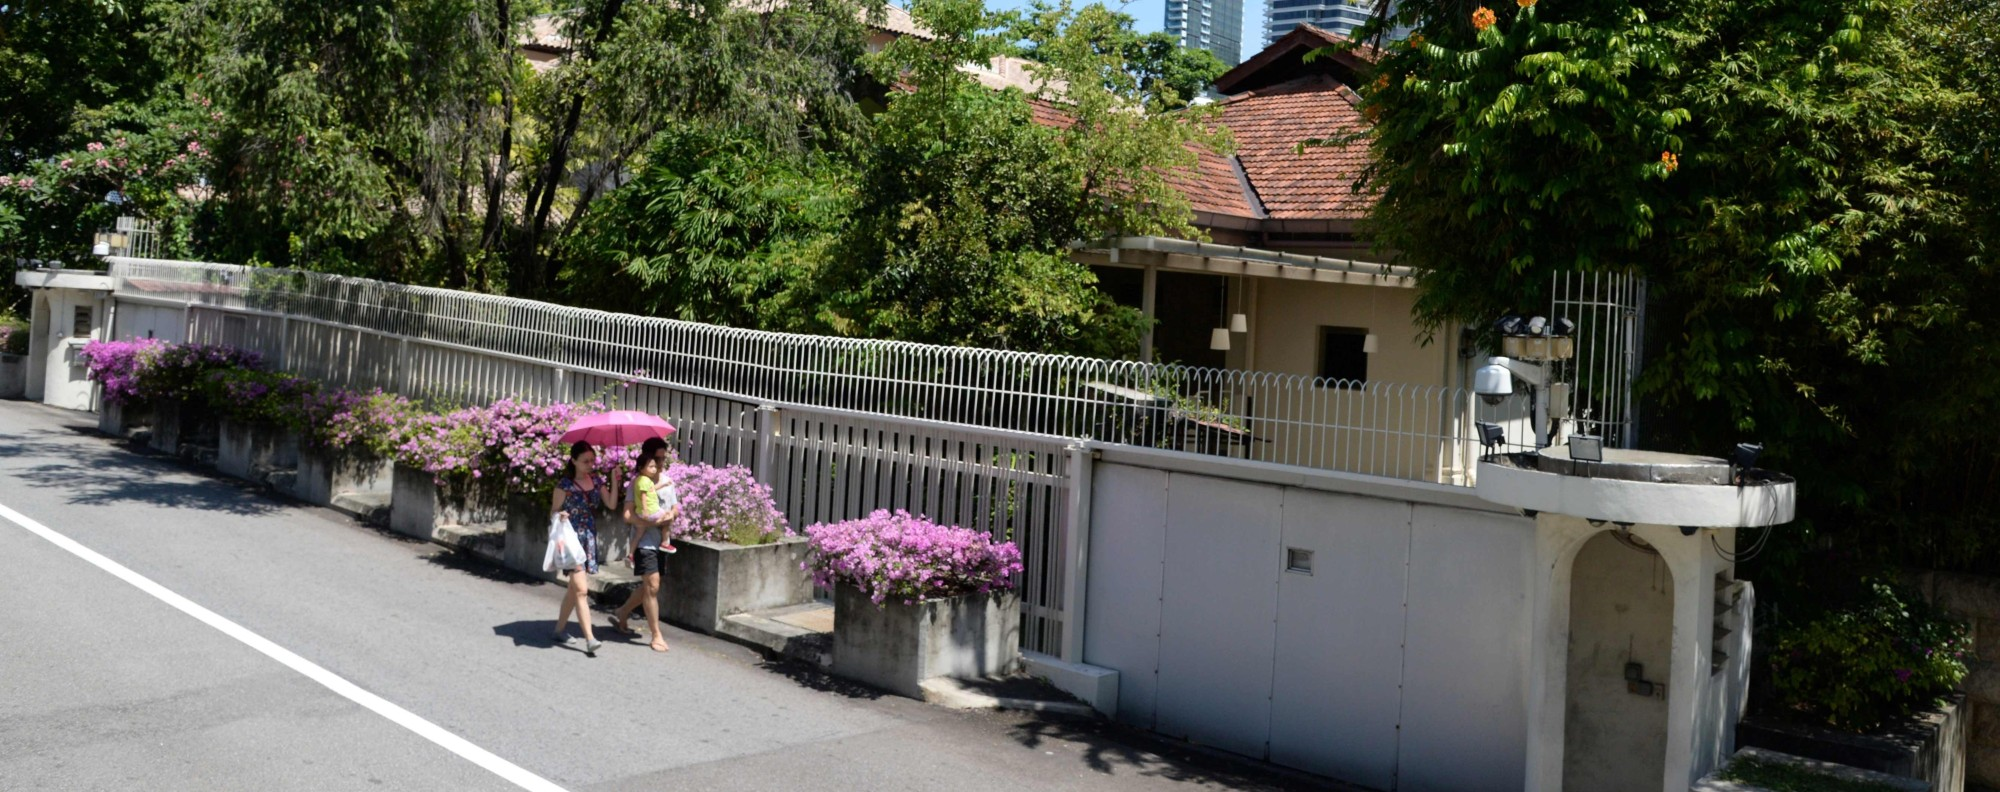 Lee Kuan Yew's residence at 38 Oxley Road in Singapore. Photo: AFP